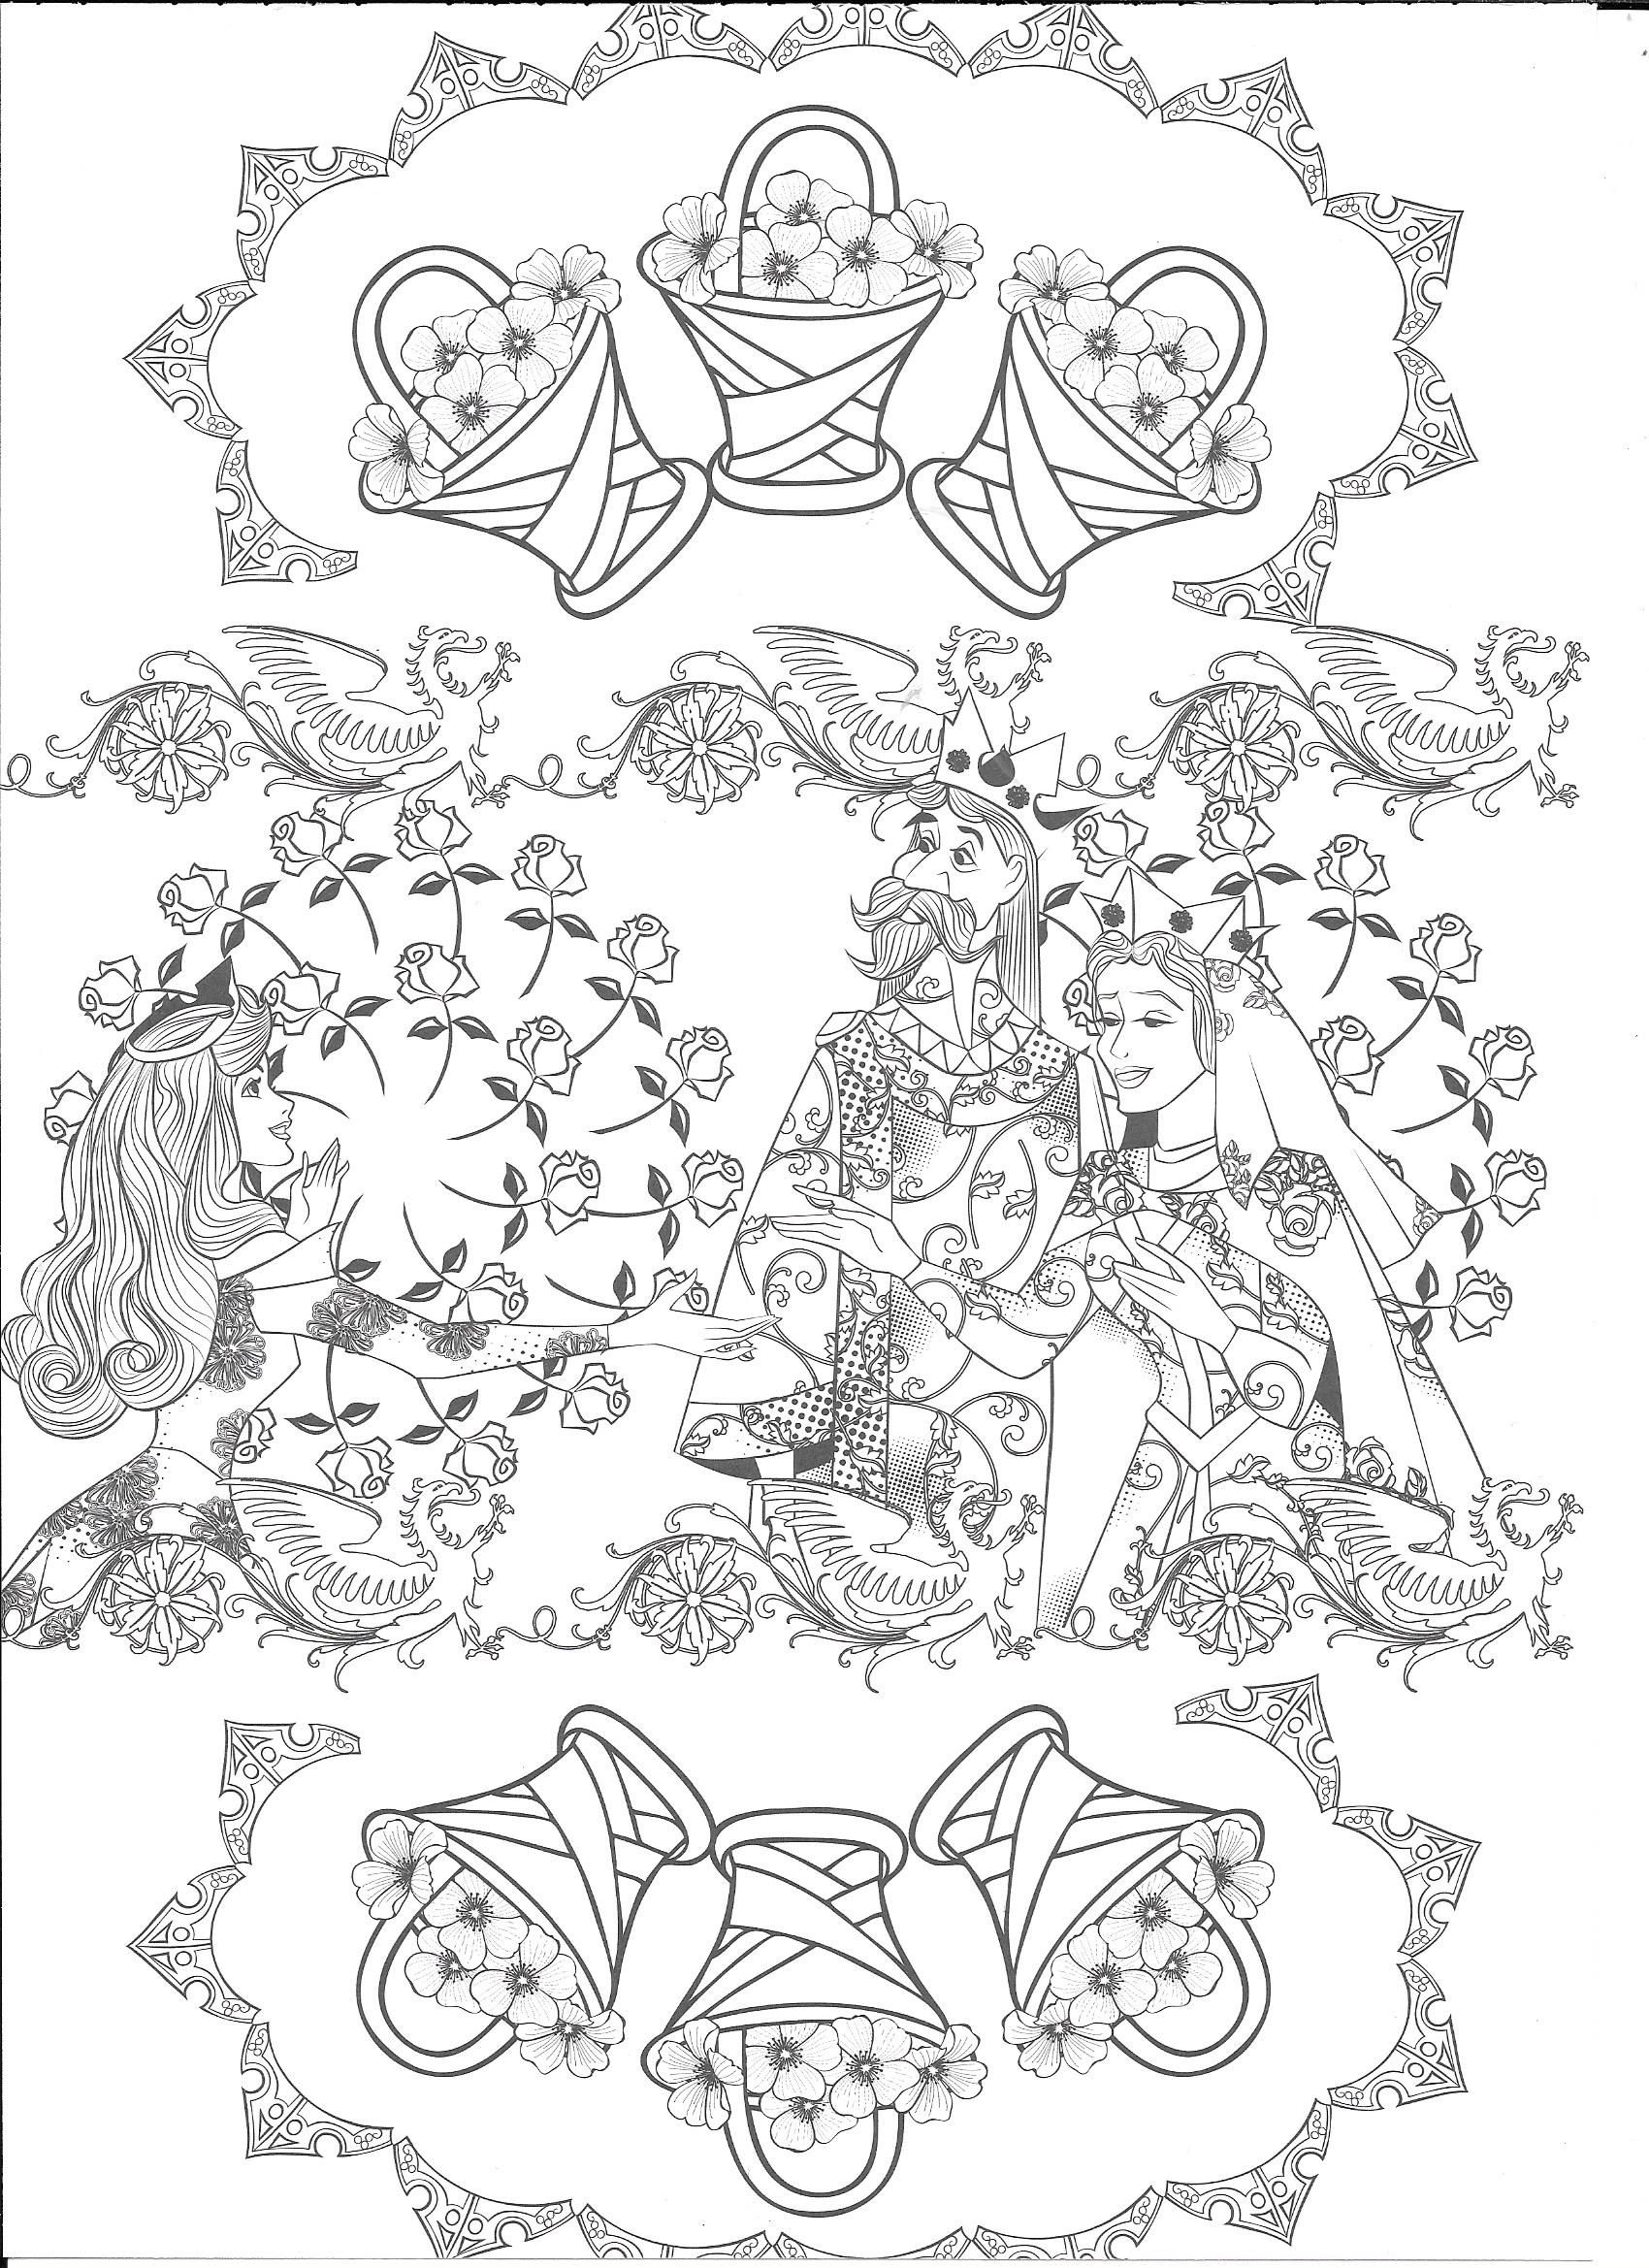 Pin By Ariel On Aa Coloring Disney Coloring Pages Disney Princess Coloring Pages Princess Coloring Pages